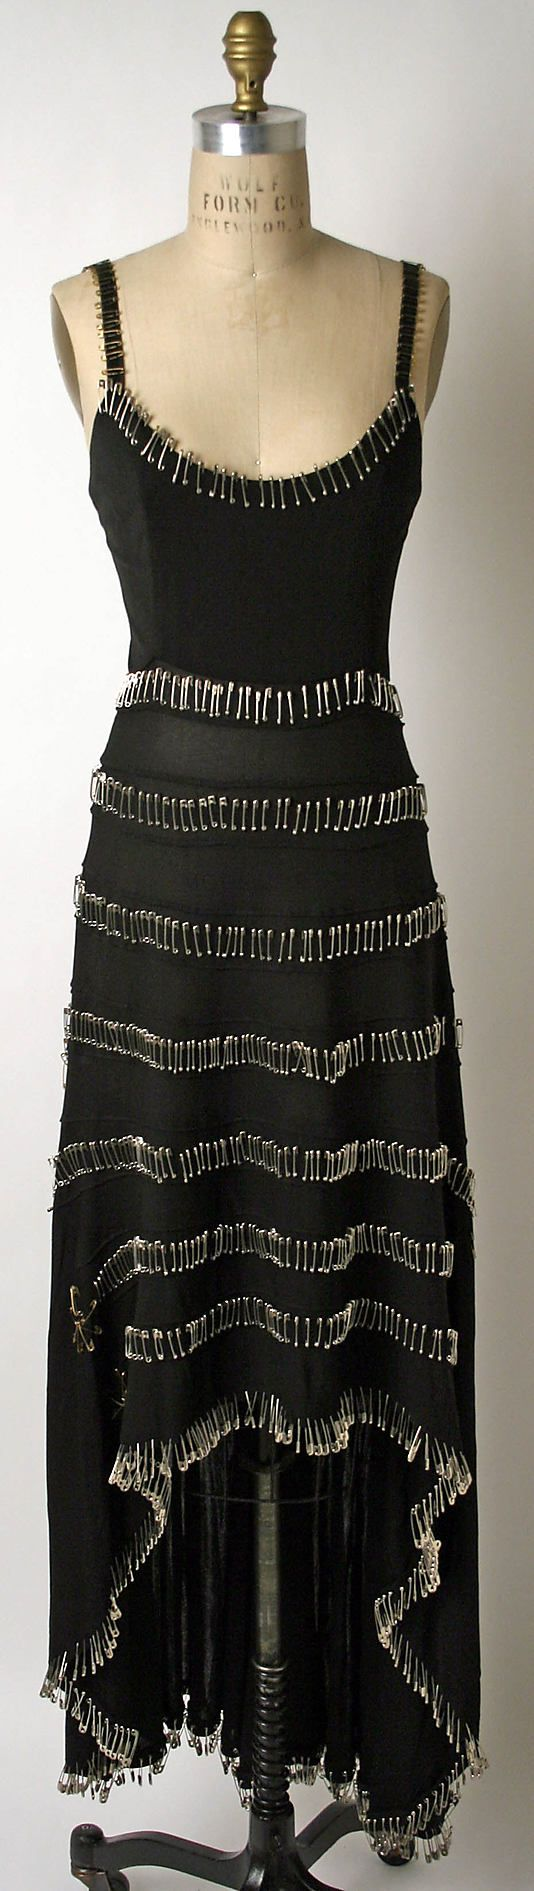 Dress  Todd Oldham  (American, born 1961)  GREAT VINTAGE DRESS    LOVE THE SAFETY PINS!